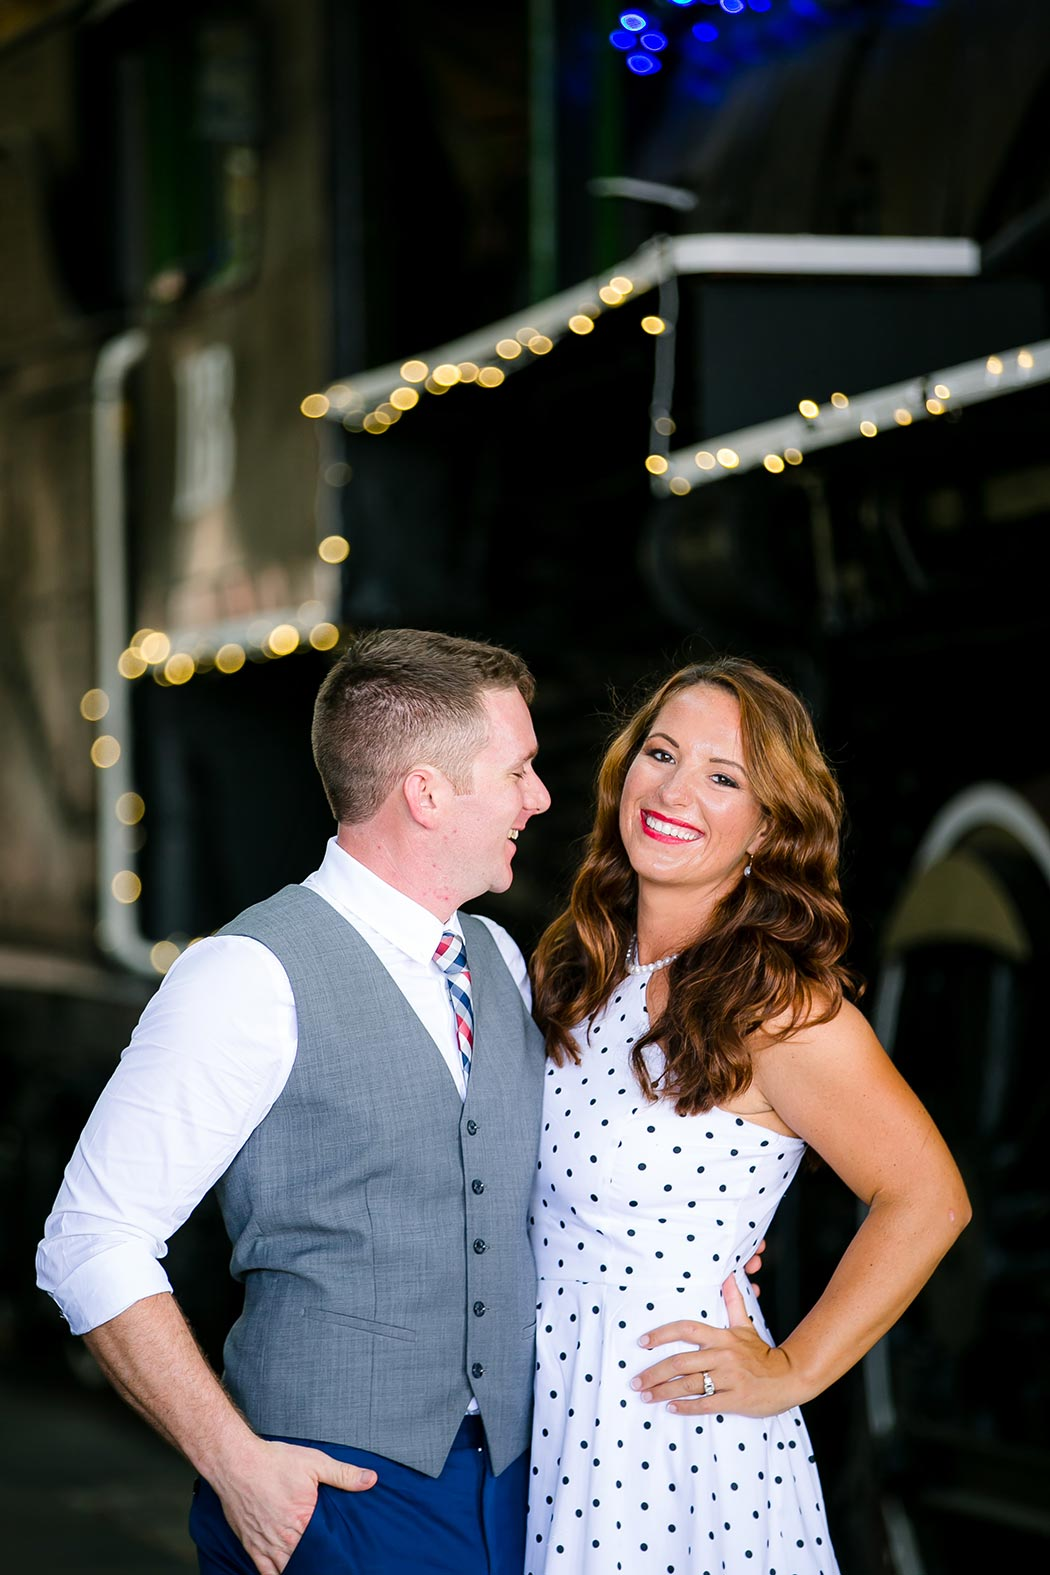 vintage inspired engagement photoshoot at miami's gold coast railroad museum